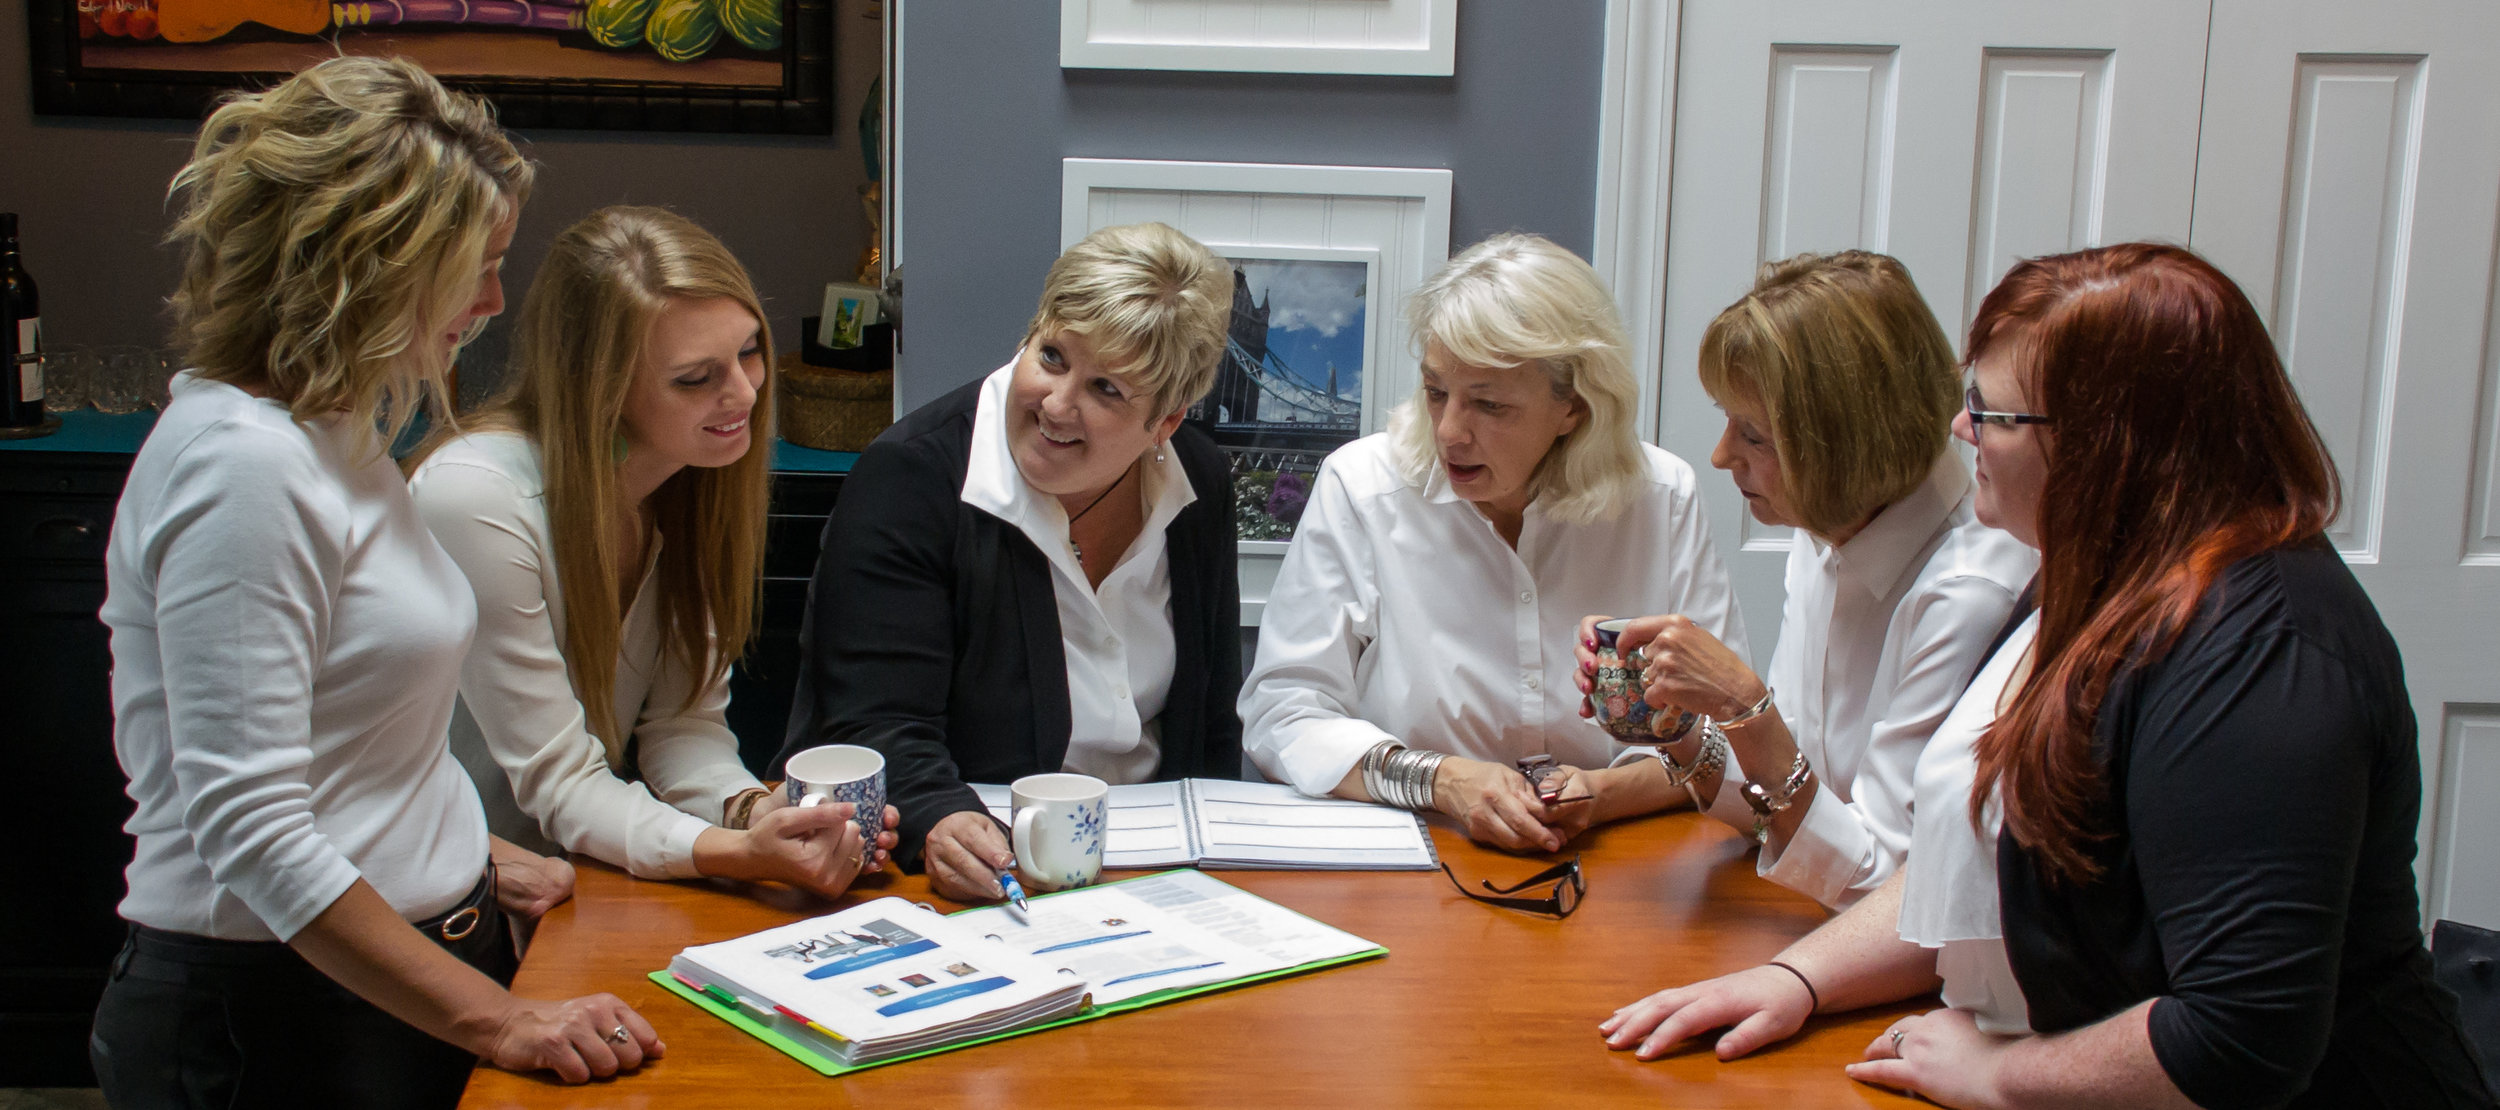 The Dau Consulting Team Leaning In (L-R):  Andrea Applegate, Jade Smith, Jeanne Dau, Ann Beck, Jill Nilsen and Rachel Berg